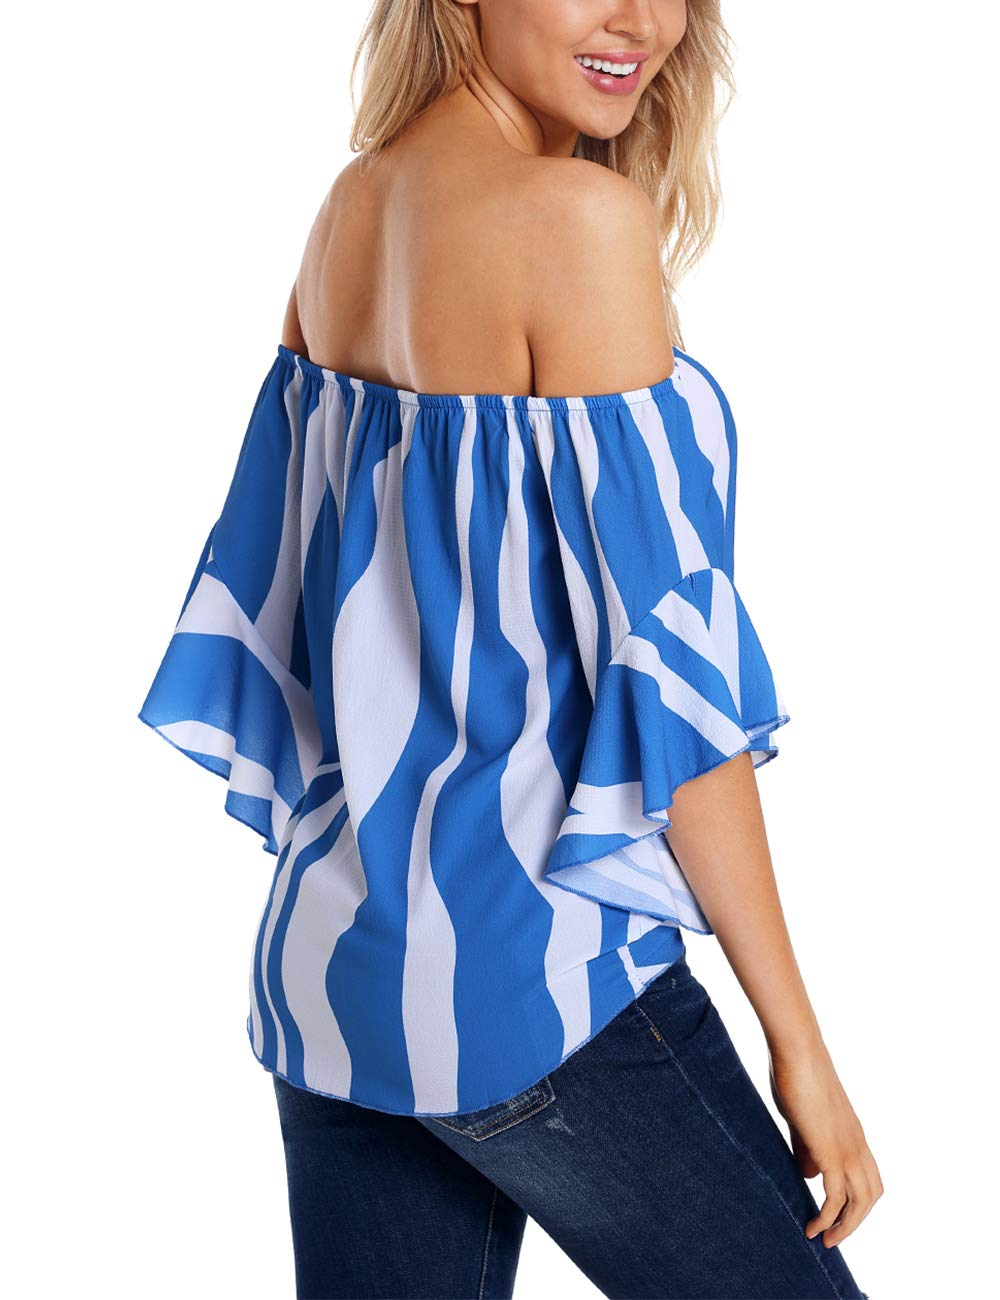 RSM &CHENG Women's Striped Off Shoulder Bell Sleeve Shirt Tie Knot Casual Blouses Tops(Stripe Blue,L)